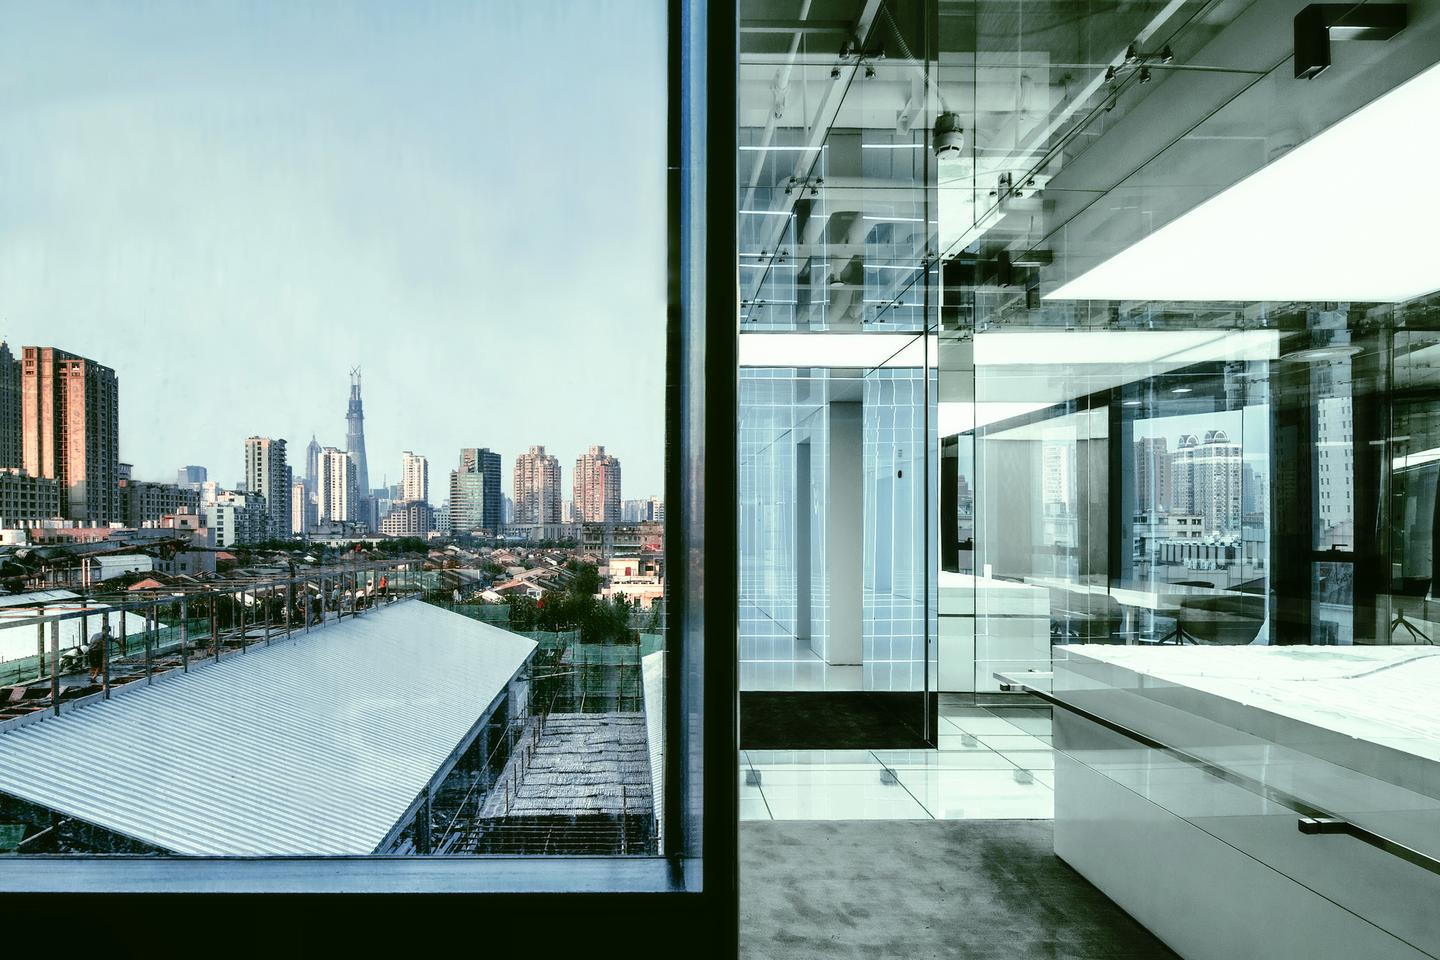 The office is undoubtedly stunning to look at, but how practical is it? (Photo: Jerry Yin)